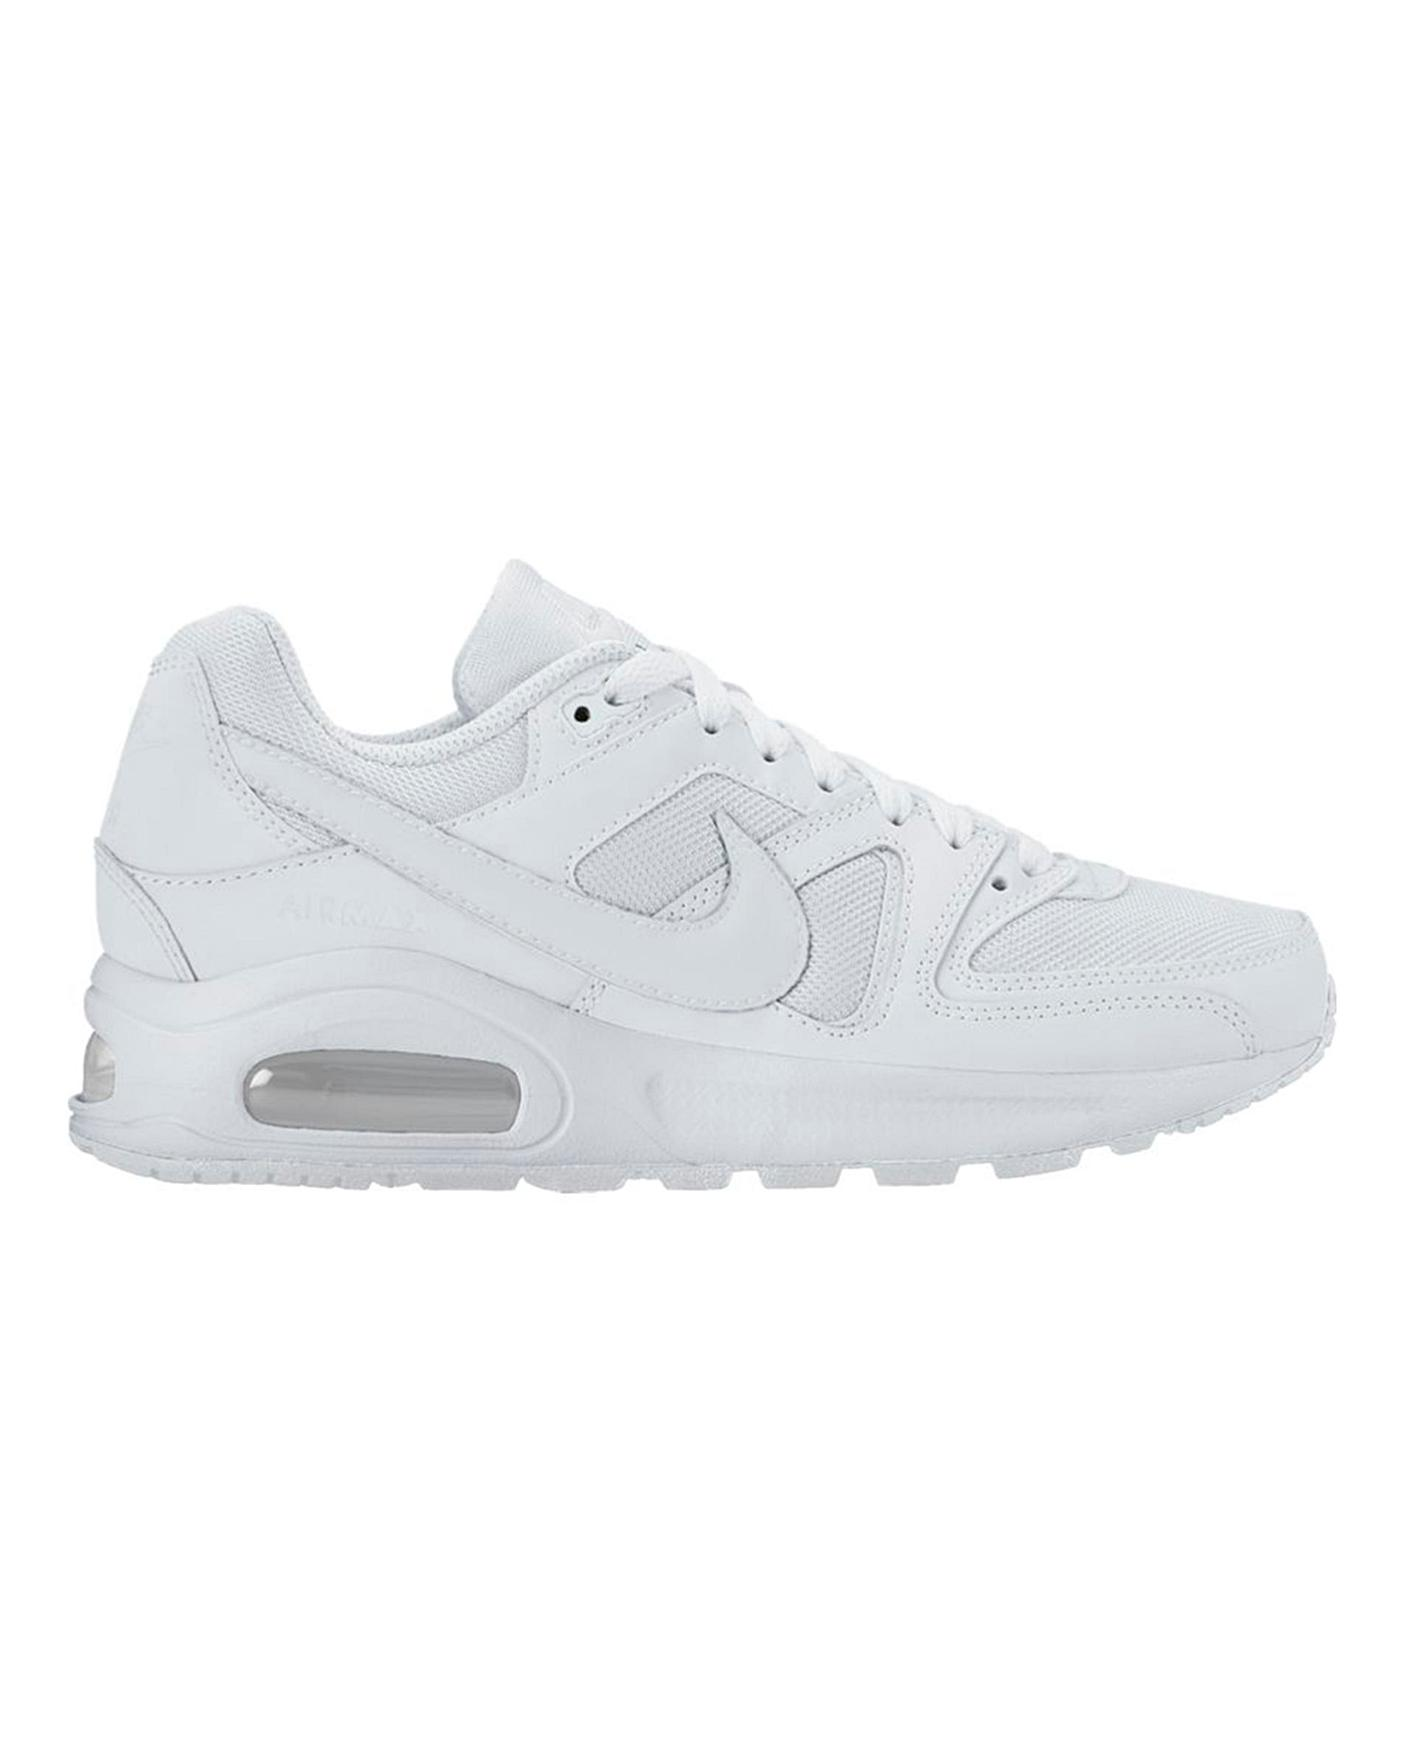 7807c356e3 Nike Air Max Command Trainers | The Kids Division